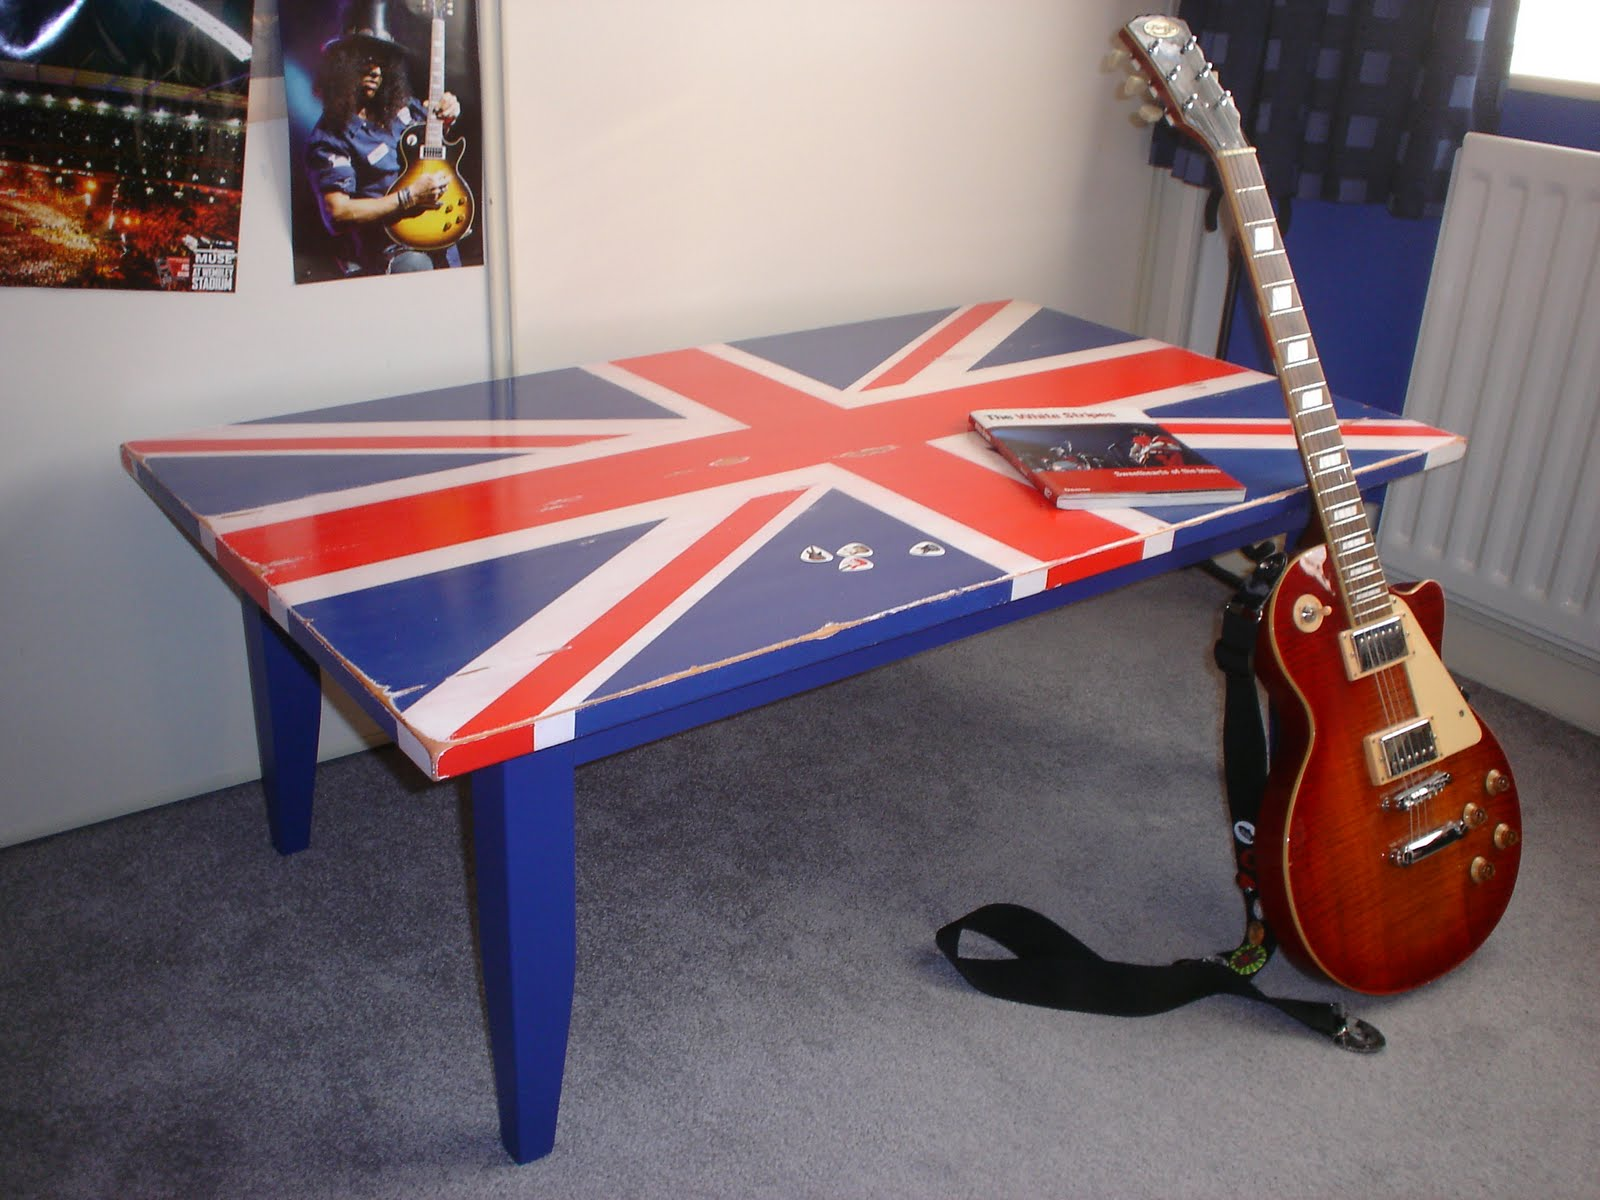 Smithy's Painted Furniture: Cool Britannia!